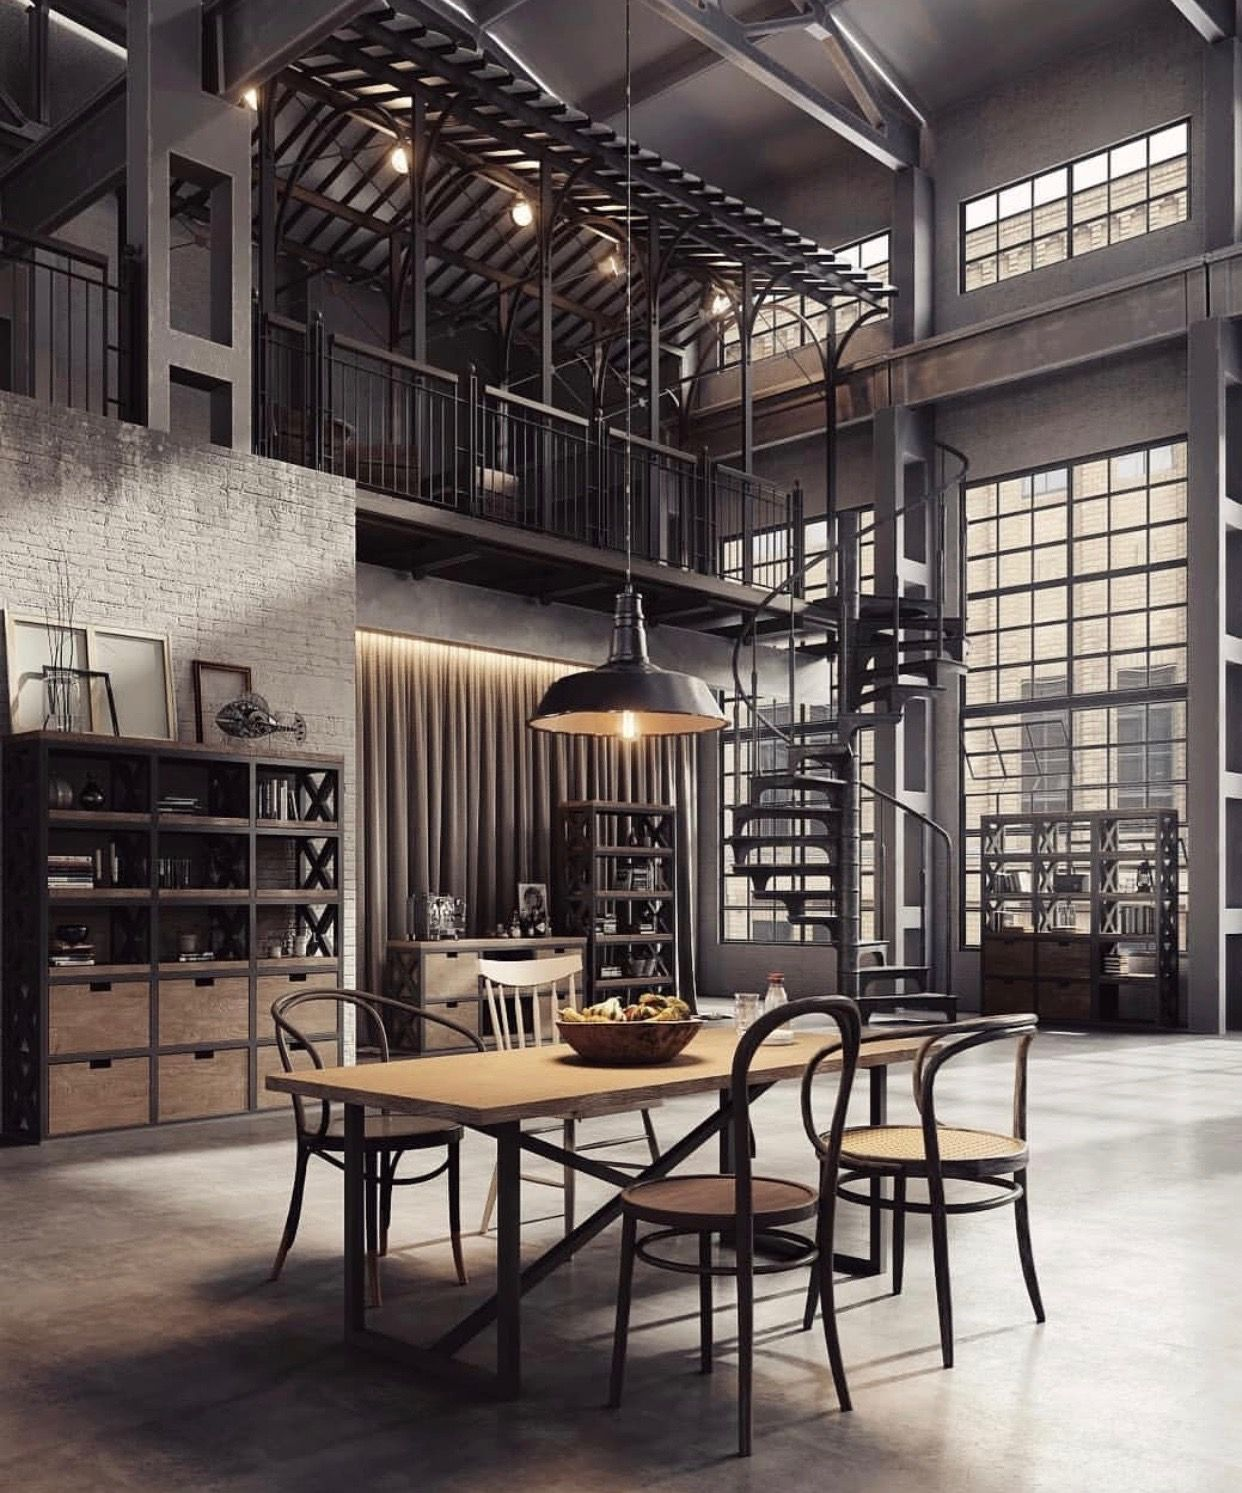 Pin By Nthabiseng On Dining Industrial Loft Design Loft Design Vintage Industrial Design